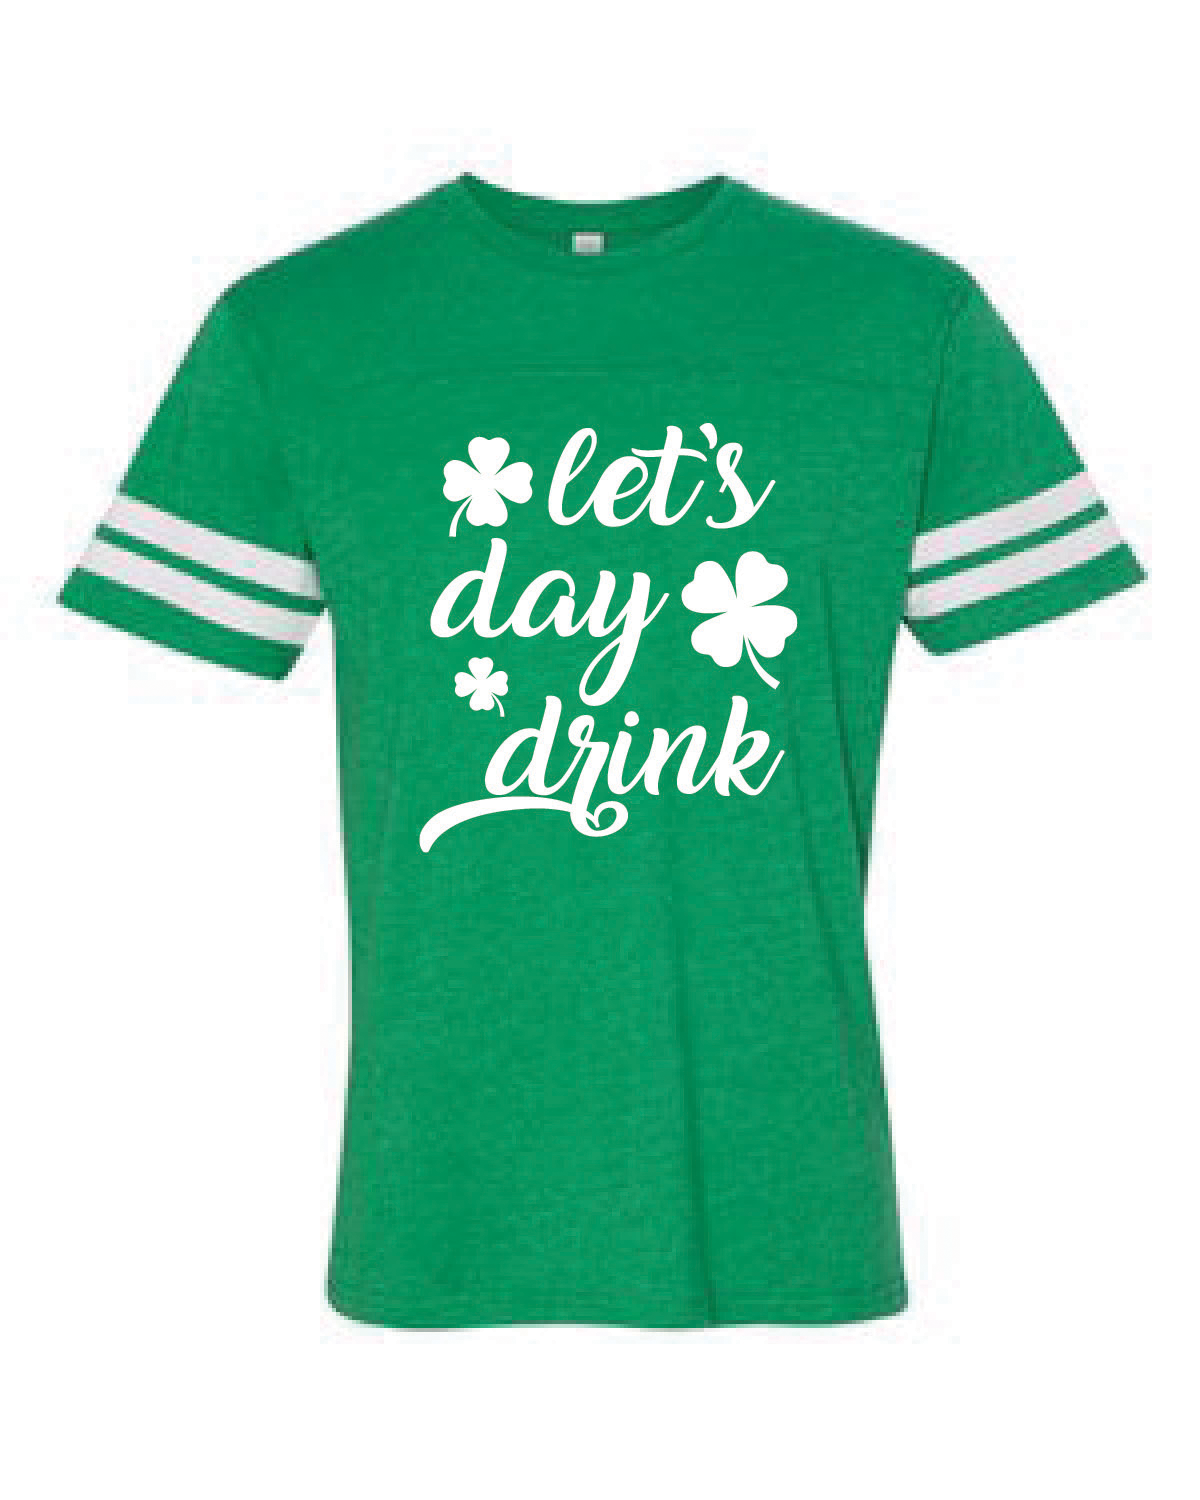 Football Style Jersey Tee (LET'S DAY DRINK)